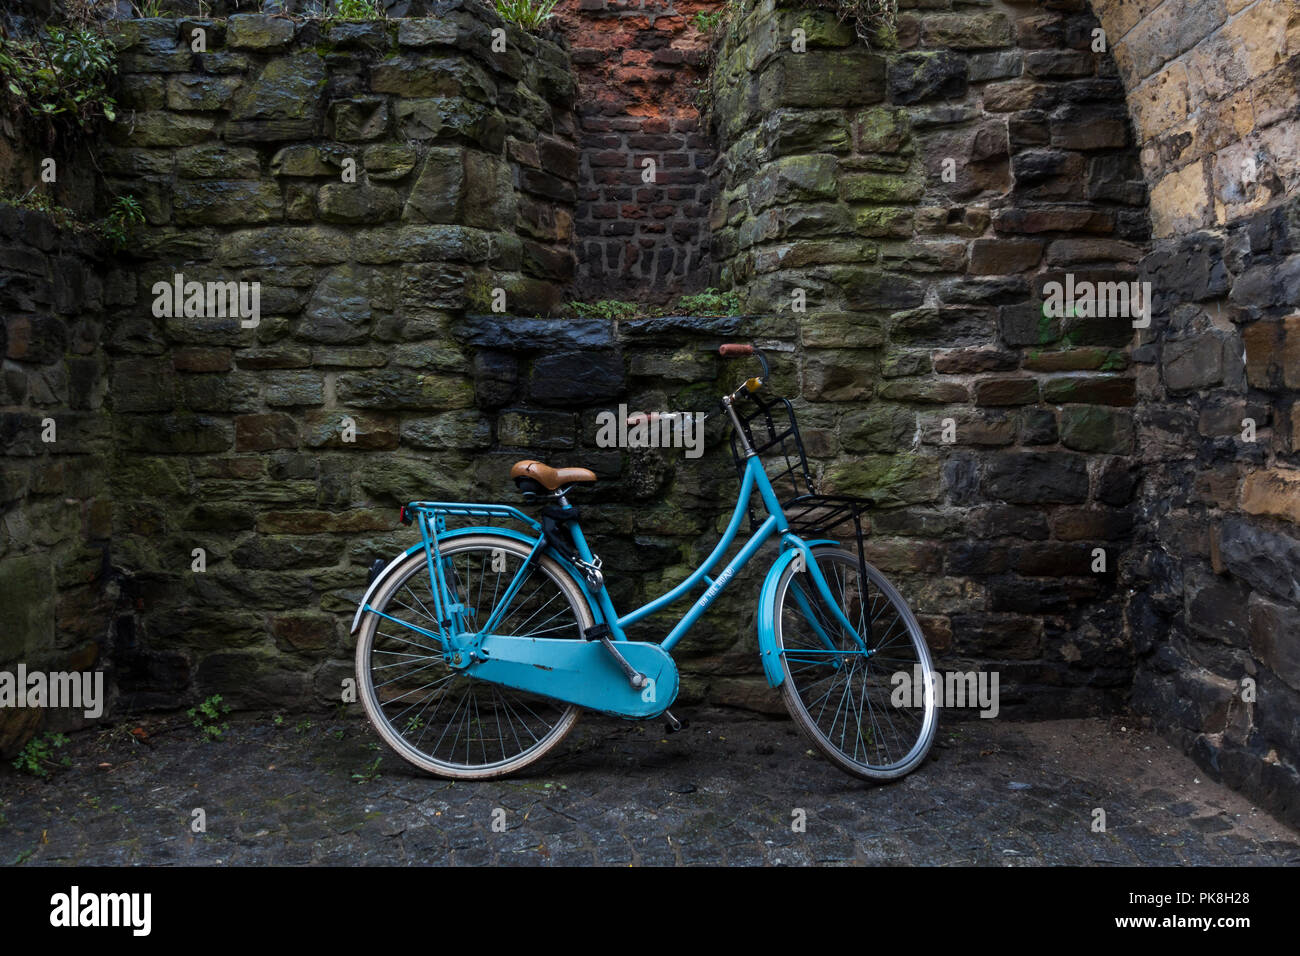 Bicycle at Maastricht, Netherlands - Stock Image